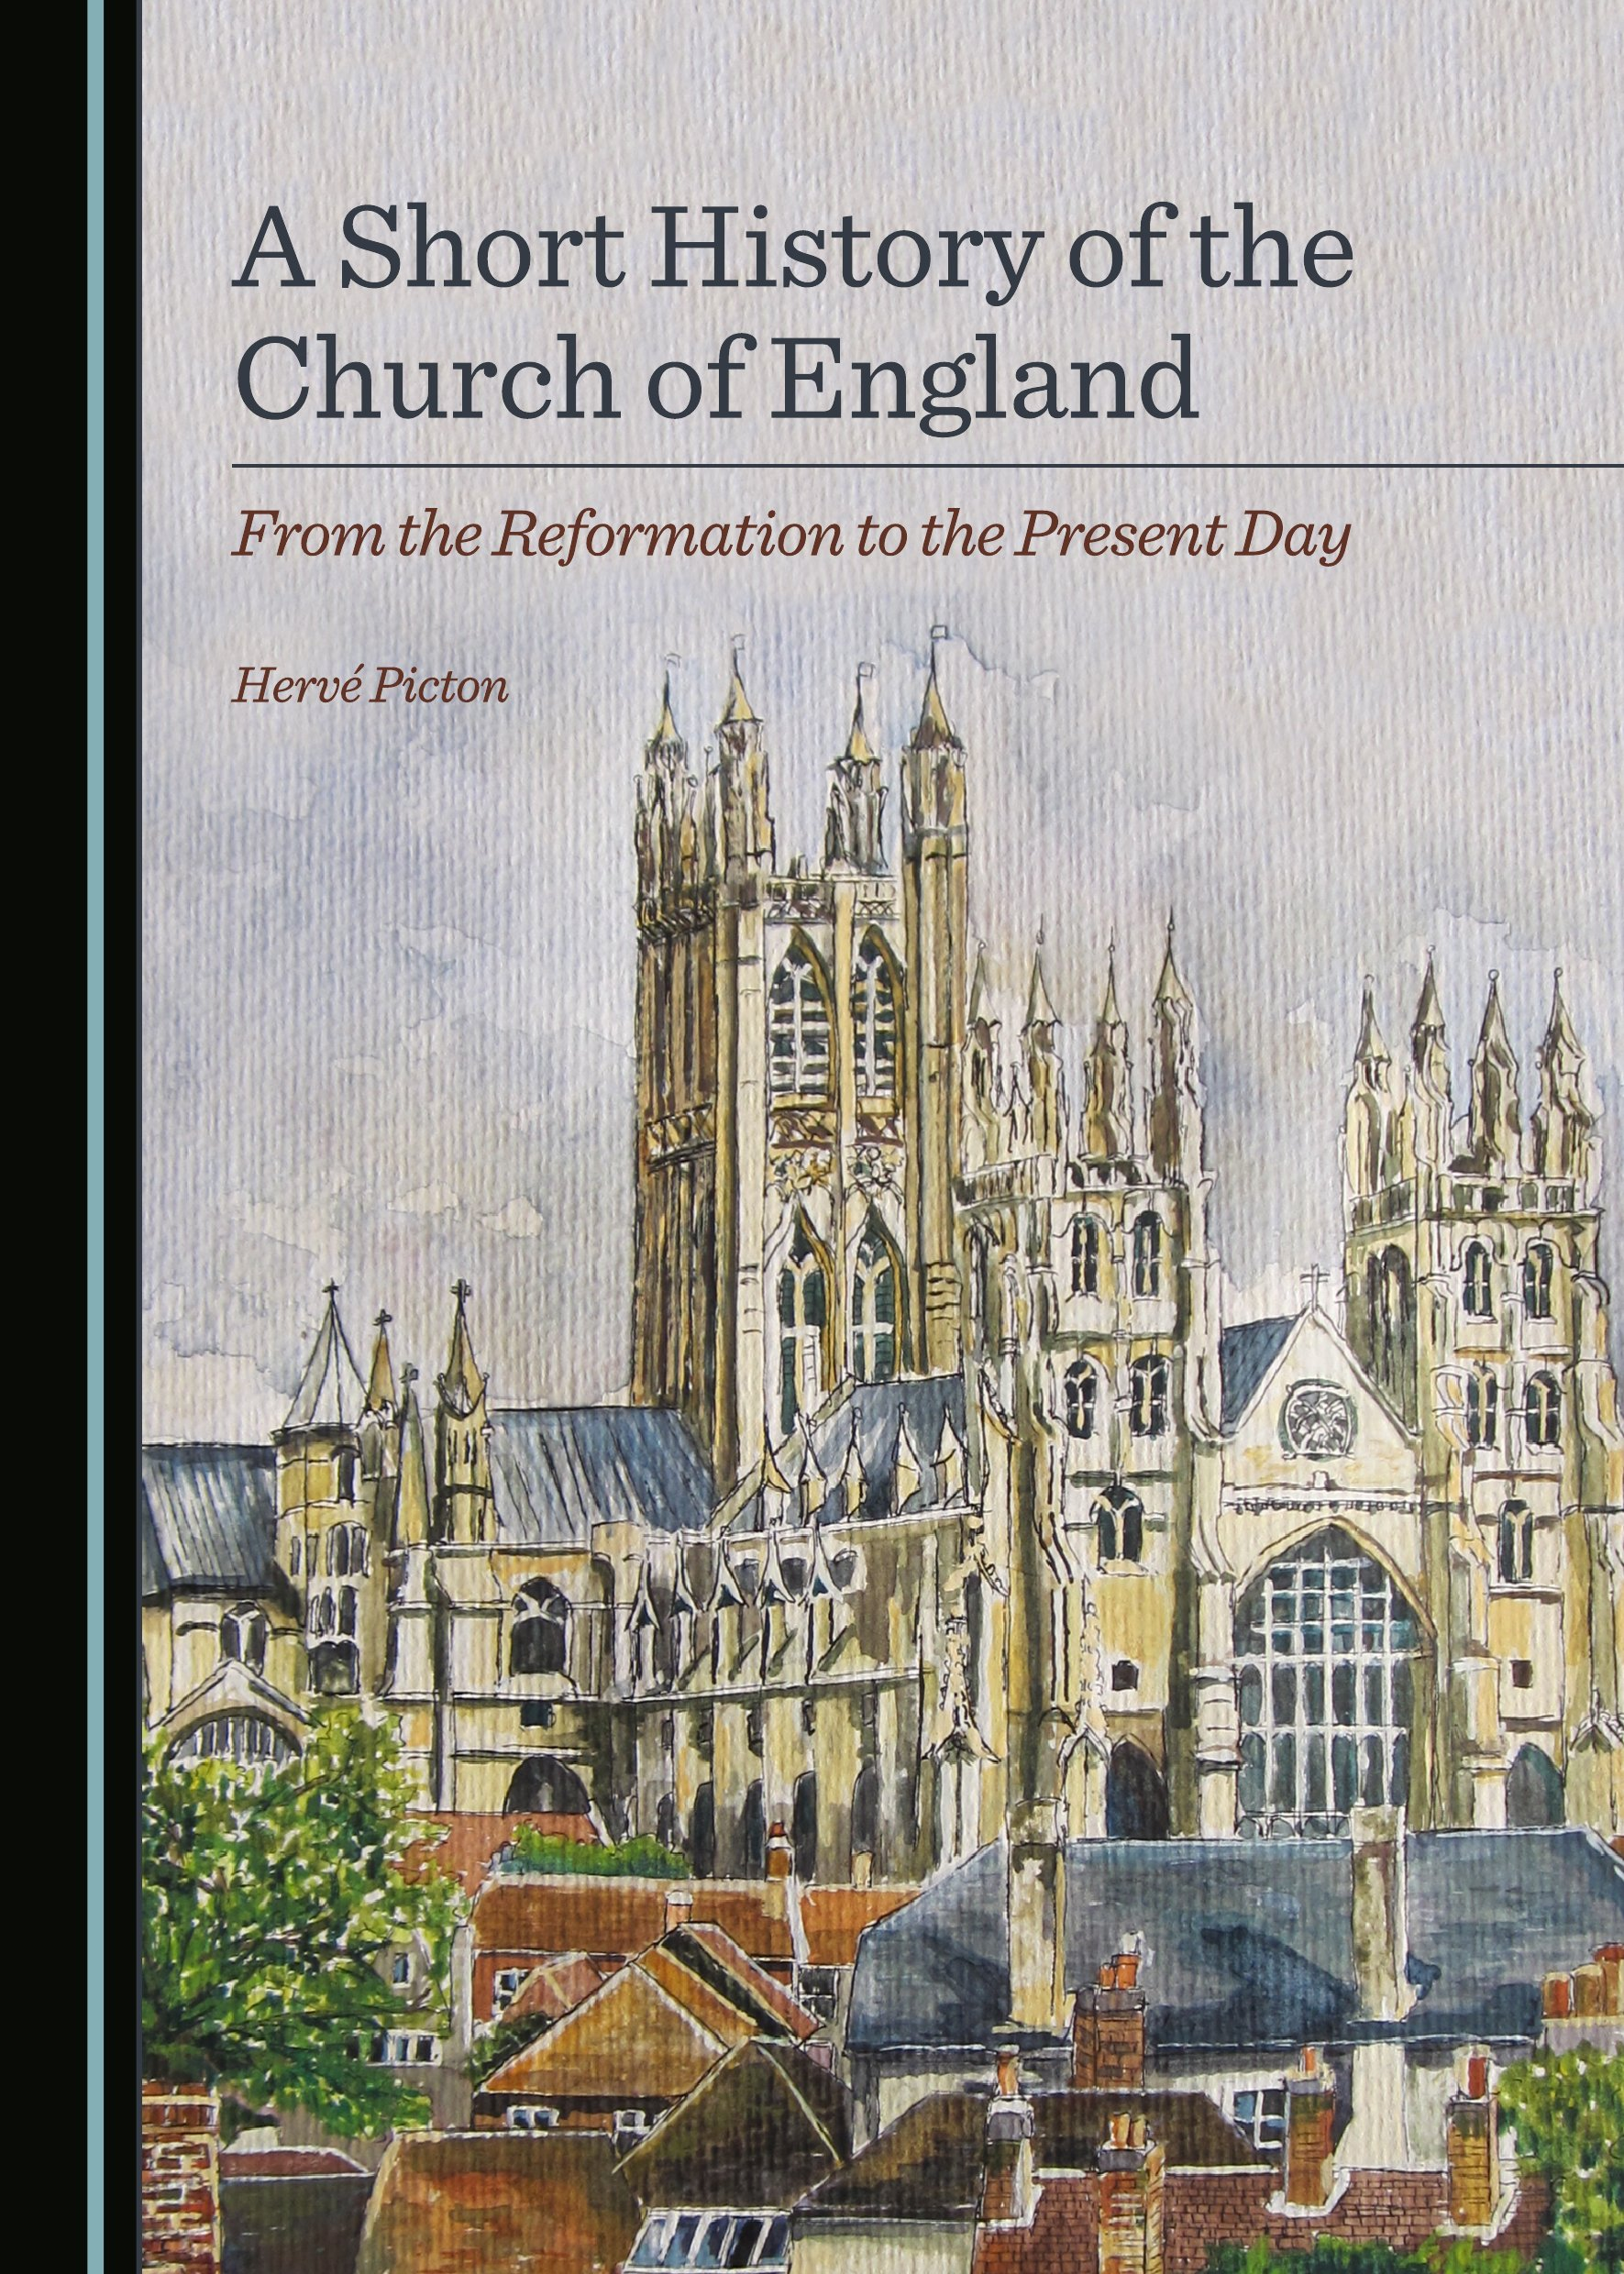 A Short History of the Church of England: From the Reformation to the Present Day